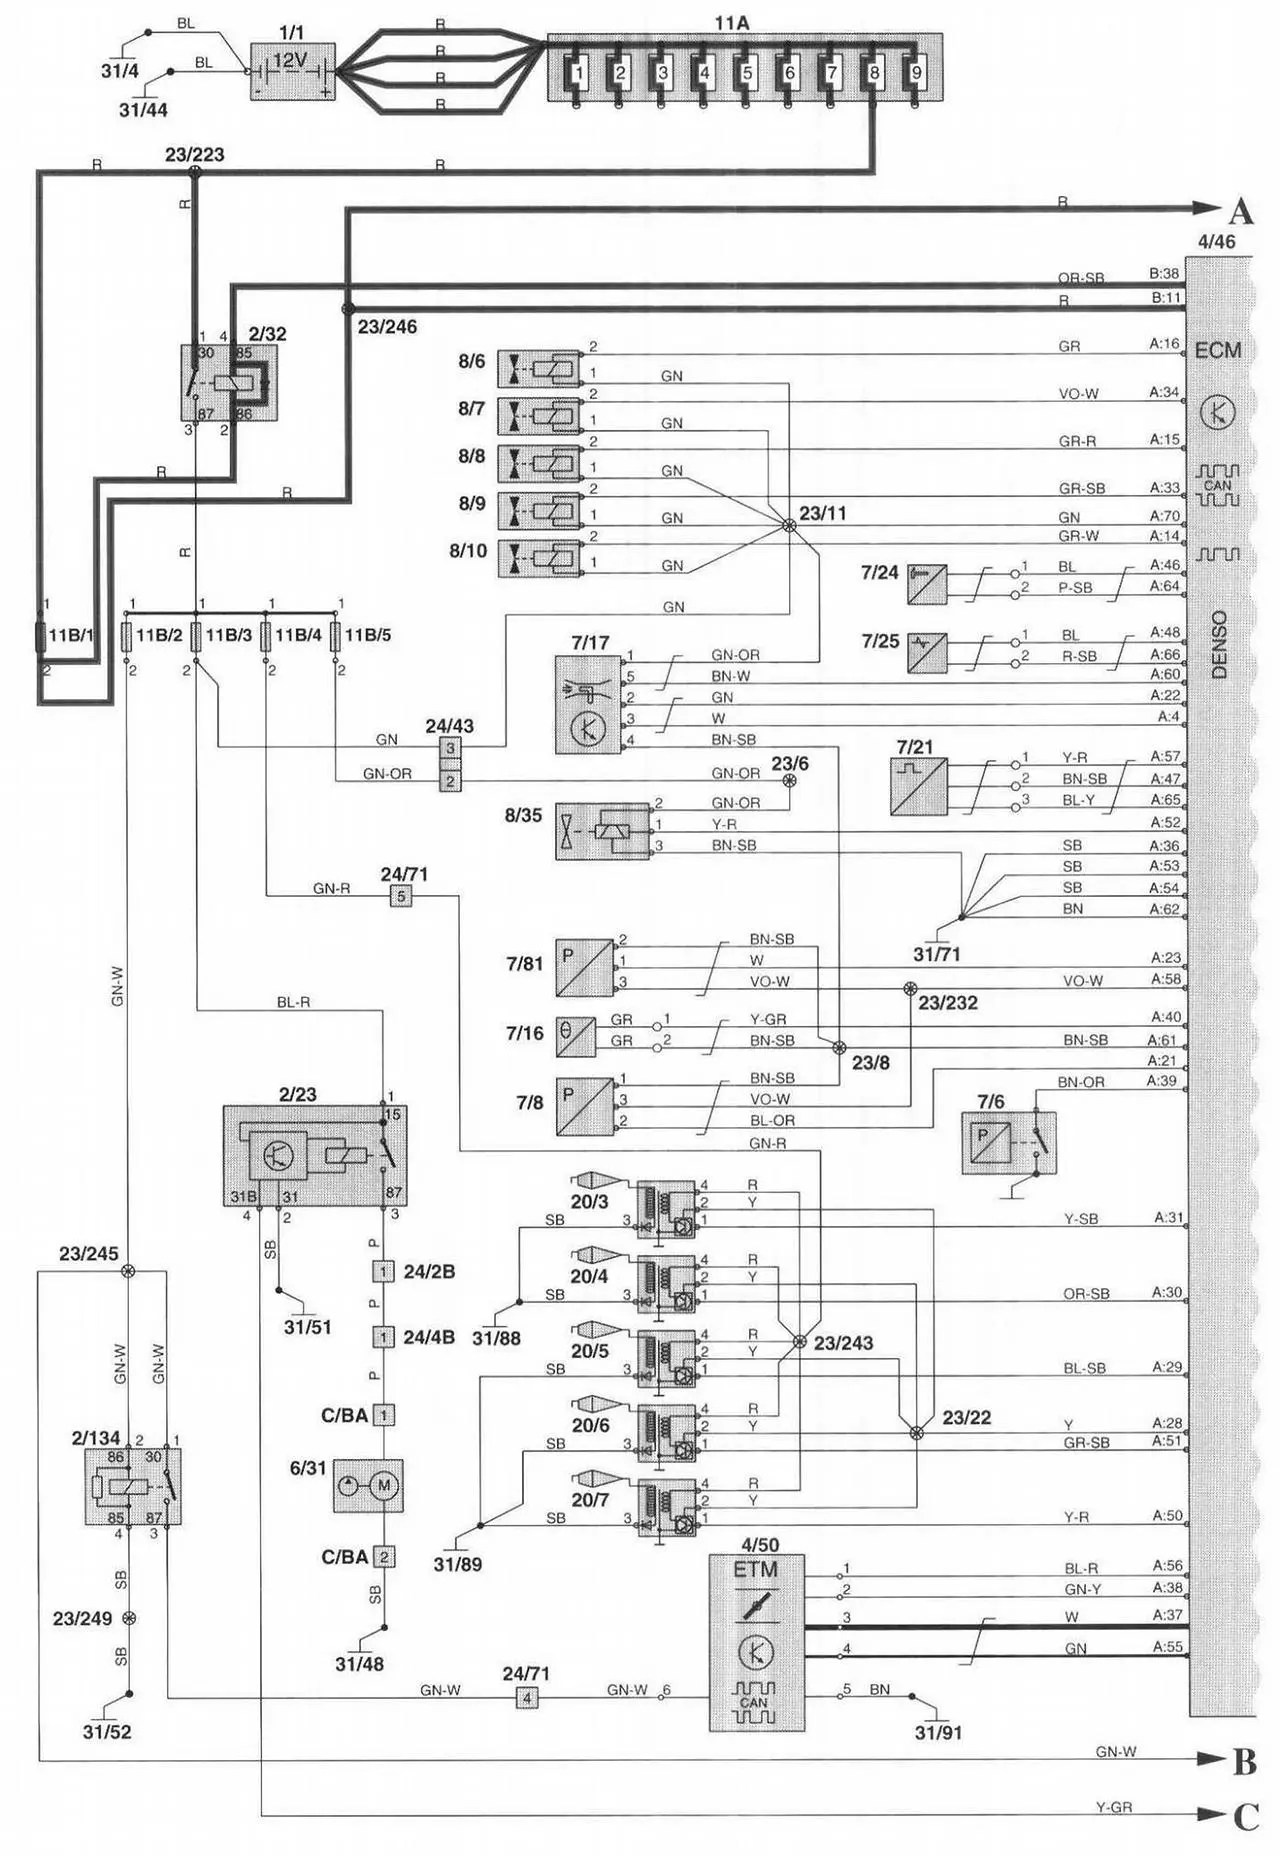 99 volvo s80 wiring diagram wiring schematic diagram 127 fiercemc covolvo s80 wiring diagram wiring diagram [ 1280 x 1856 Pixel ]